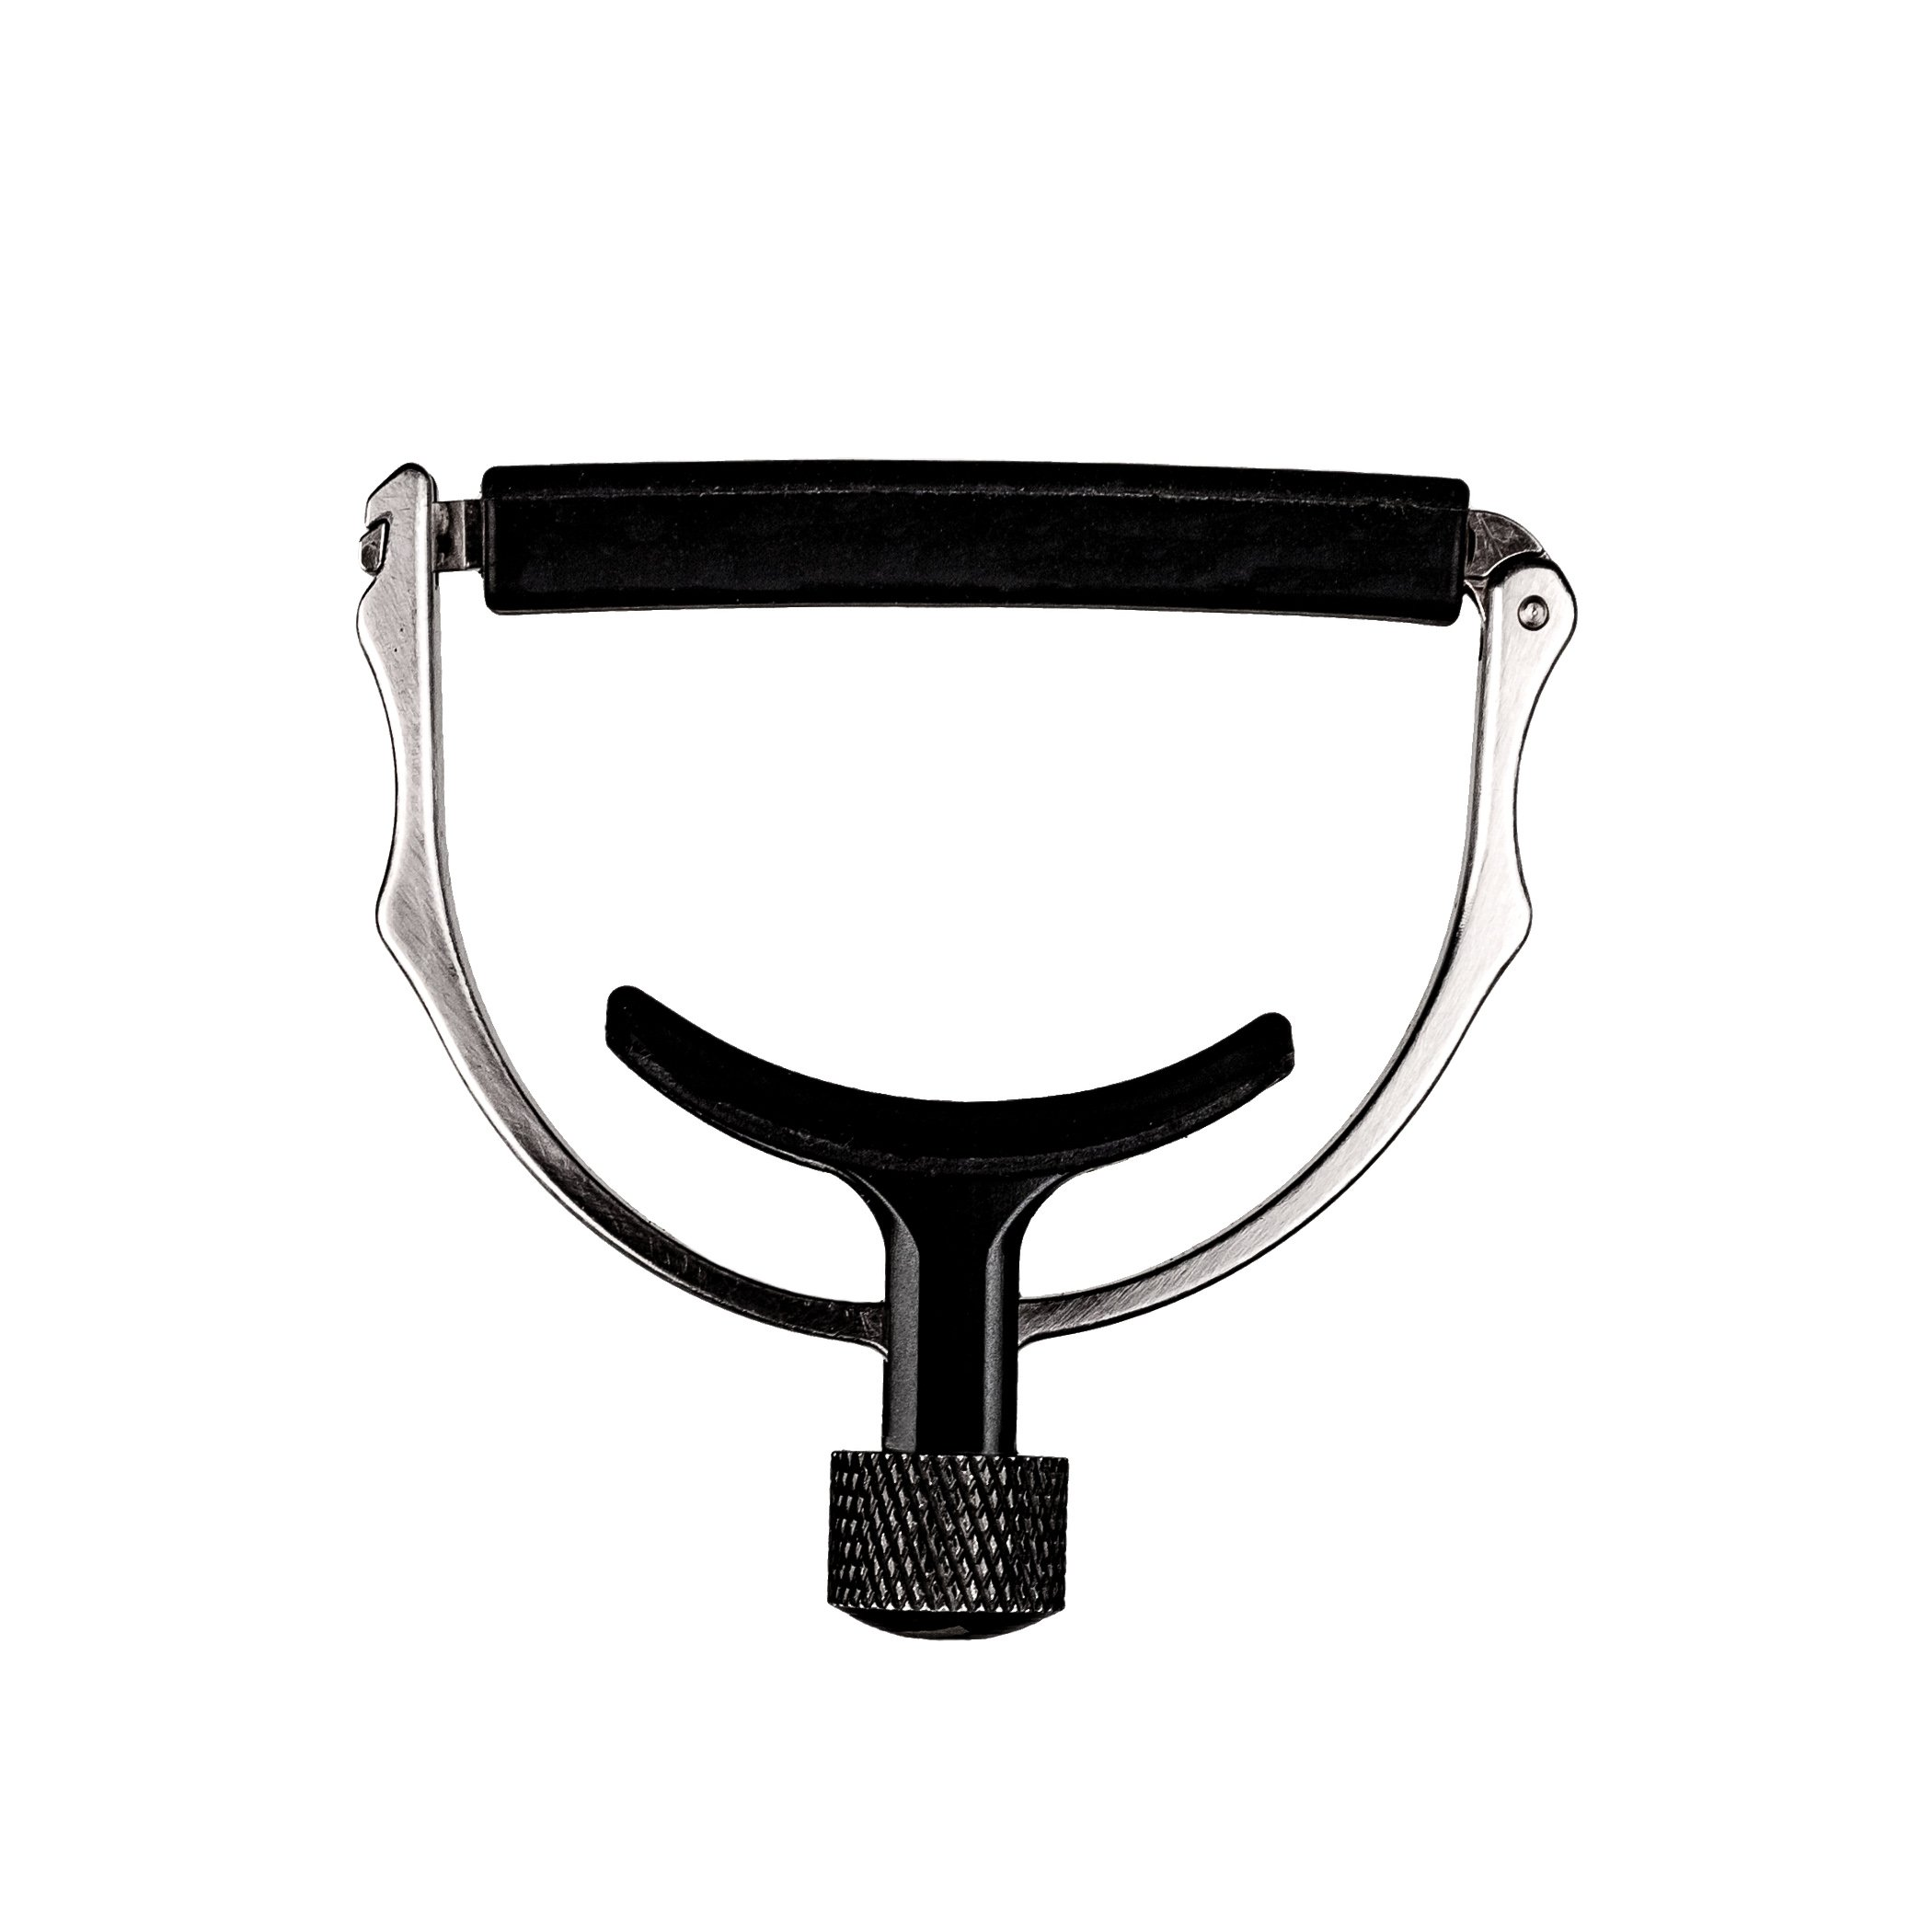 D'Addario Accessories Self-Centering Cradle Capo